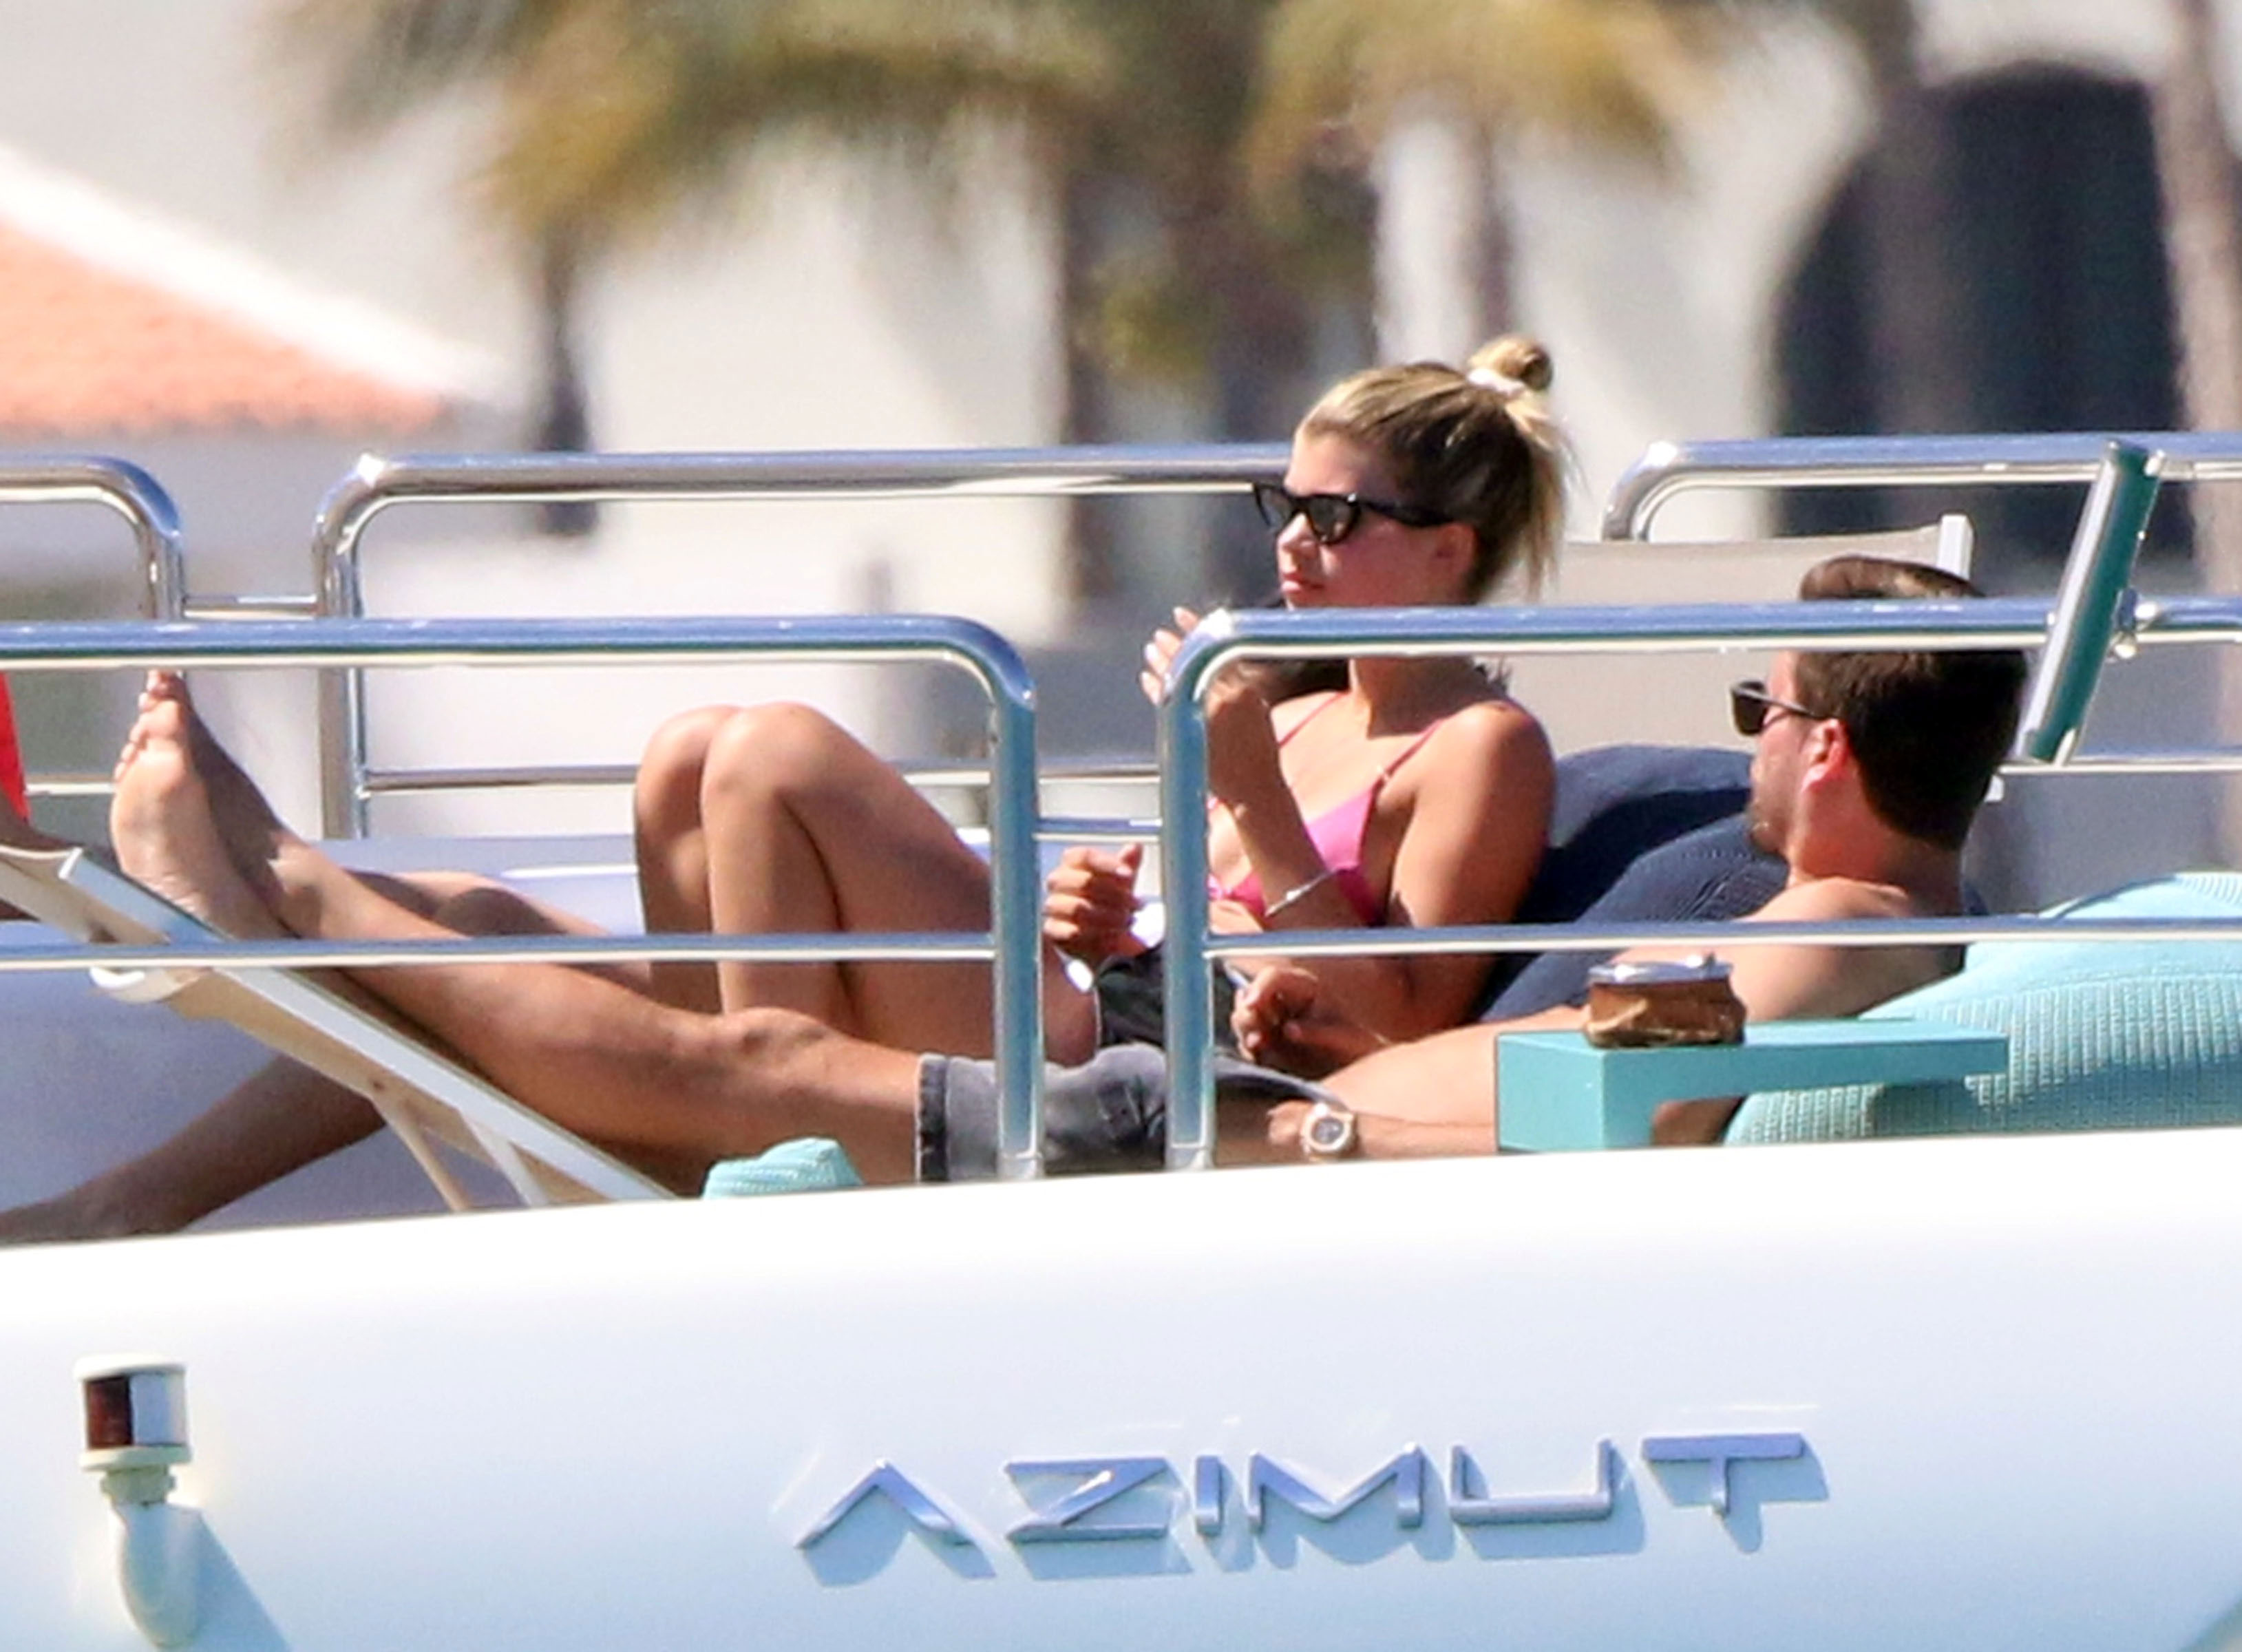 Scott Disick Sofia Richie vacation in Mexico - The duo looked relaxed as they lounged aboard a yacht and soaked up rays.